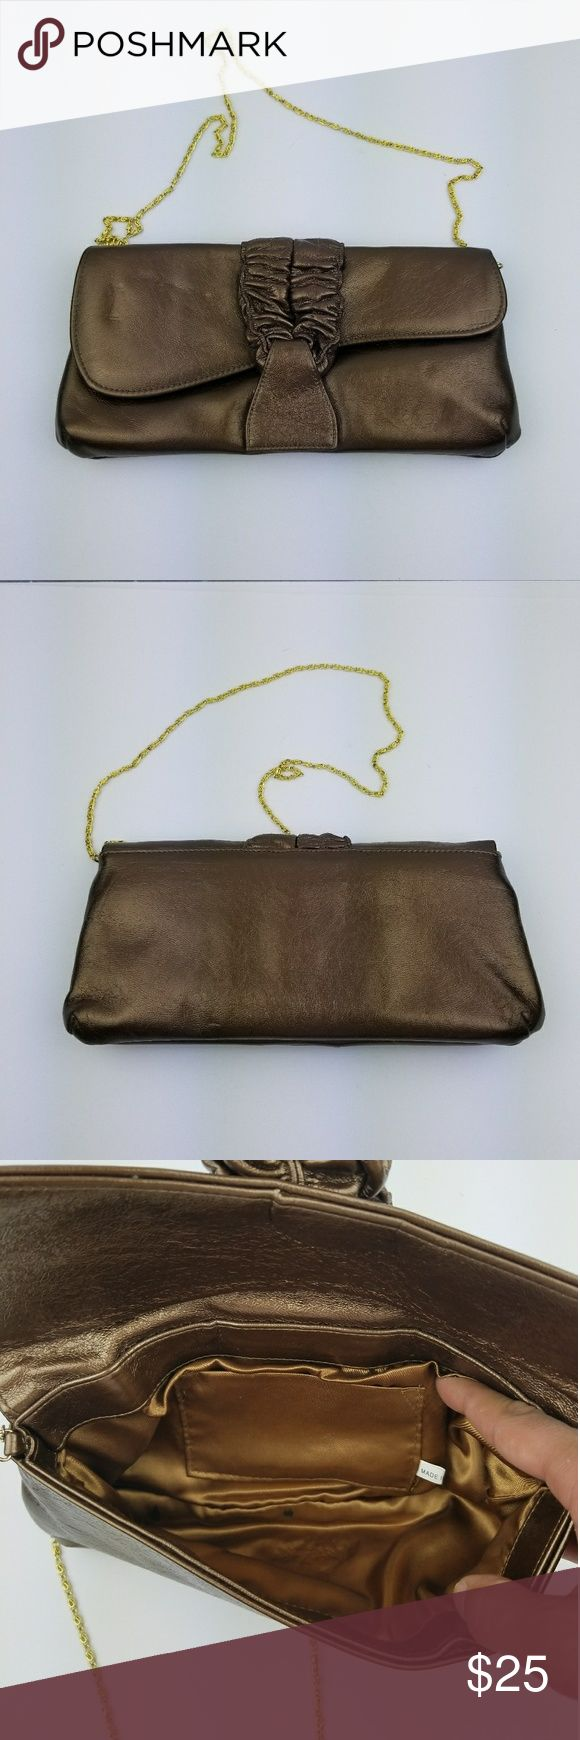 Women's Metallic Brown Clutch Bag UP for sale Women's Metallic Brown Clutch Bag Please look at all the pictures before buying it has 2 ink stains inside overall in great condition unbranded Bags Clutches & Wristlets